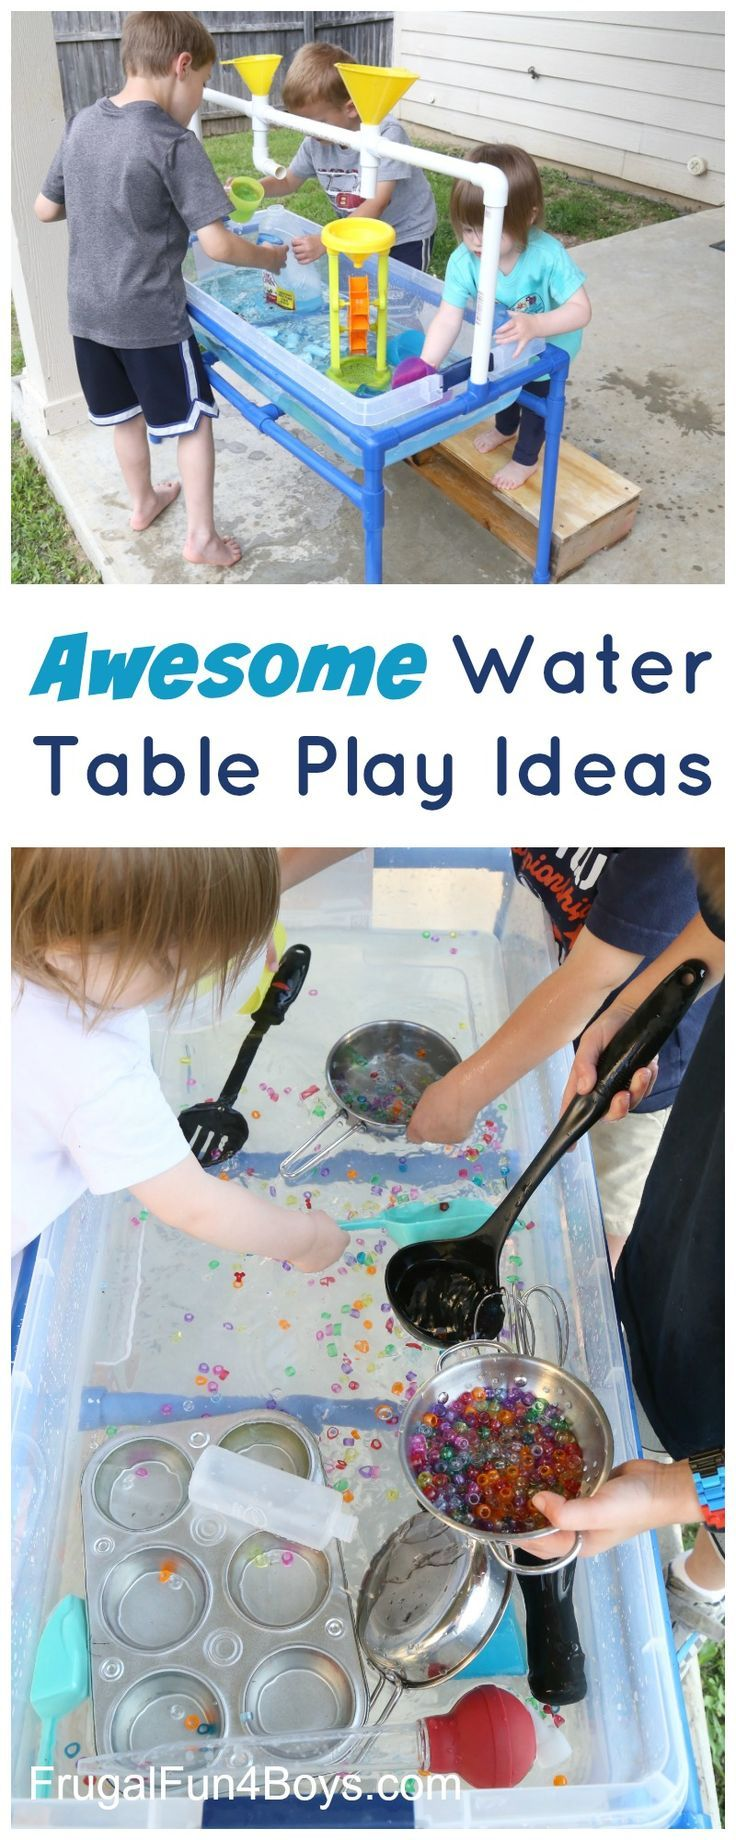 Here Are Some Awesome Sensory Play Ideas For Your Water Table That Will  Keep Kids Busy